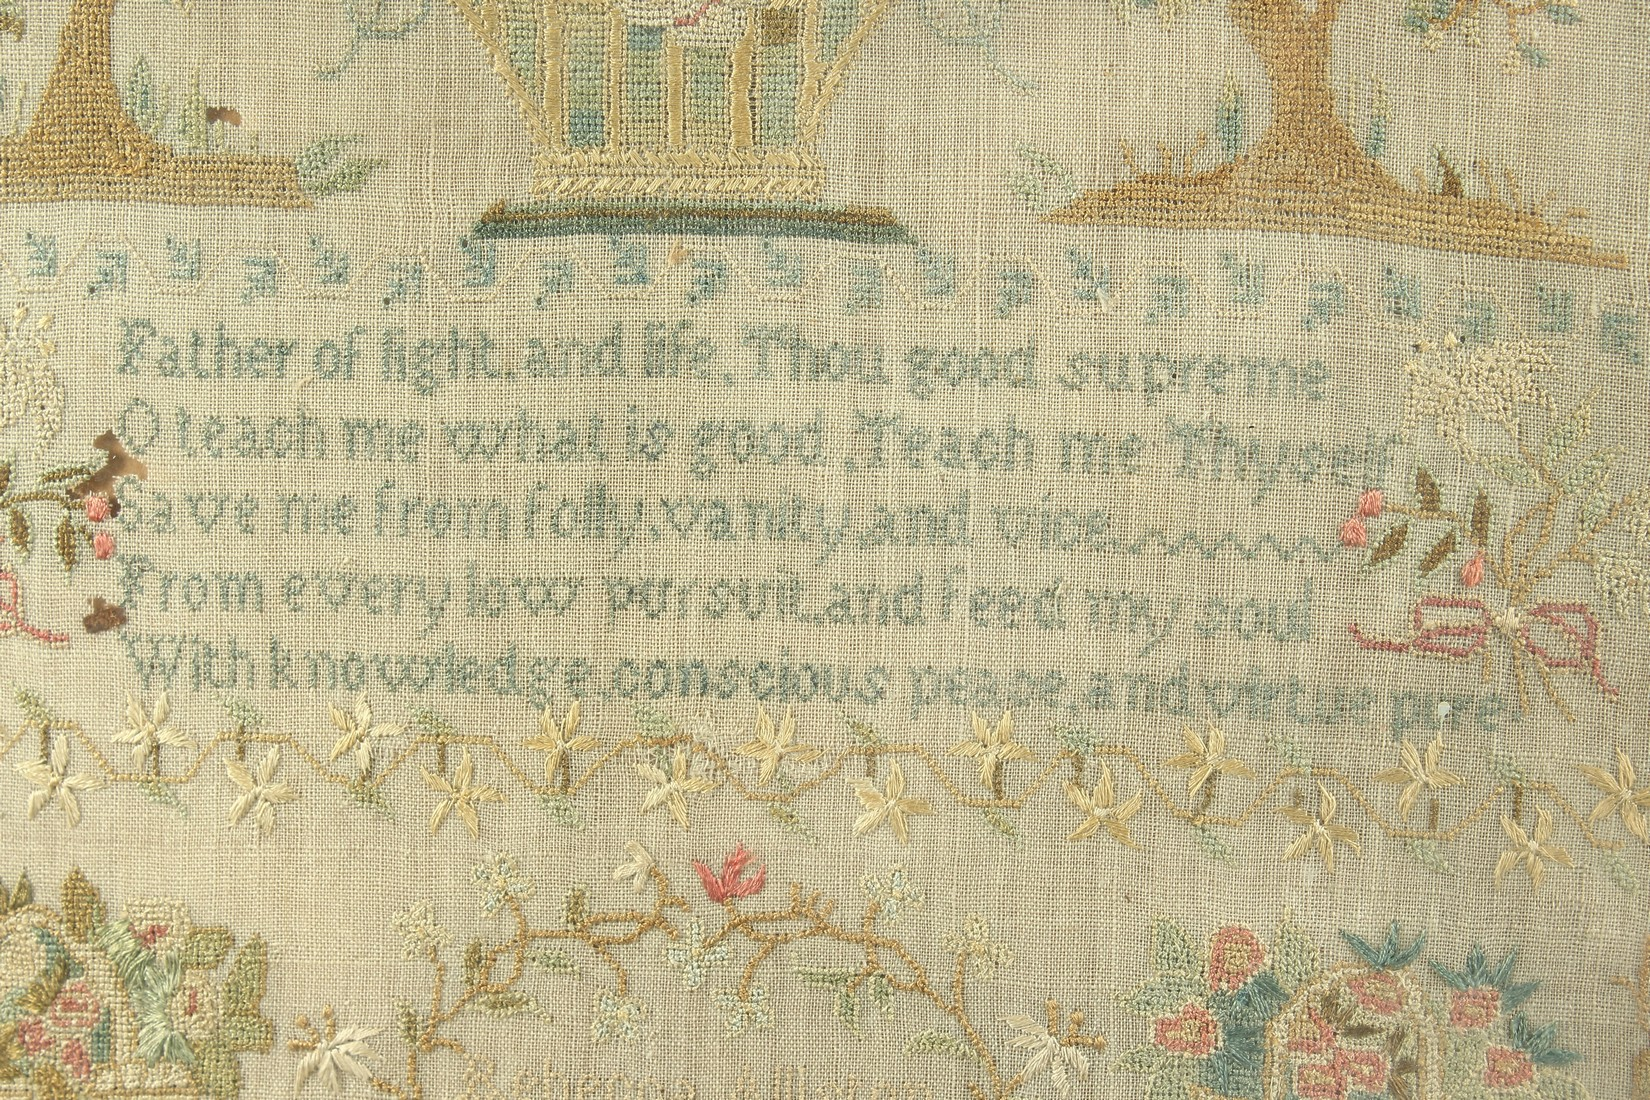 A GEORGE III FRAMED AND GLAZED SAMPLER by Roberta Allerton, 1787, with a poem, birds, flowers etc. - Image 3 of 7